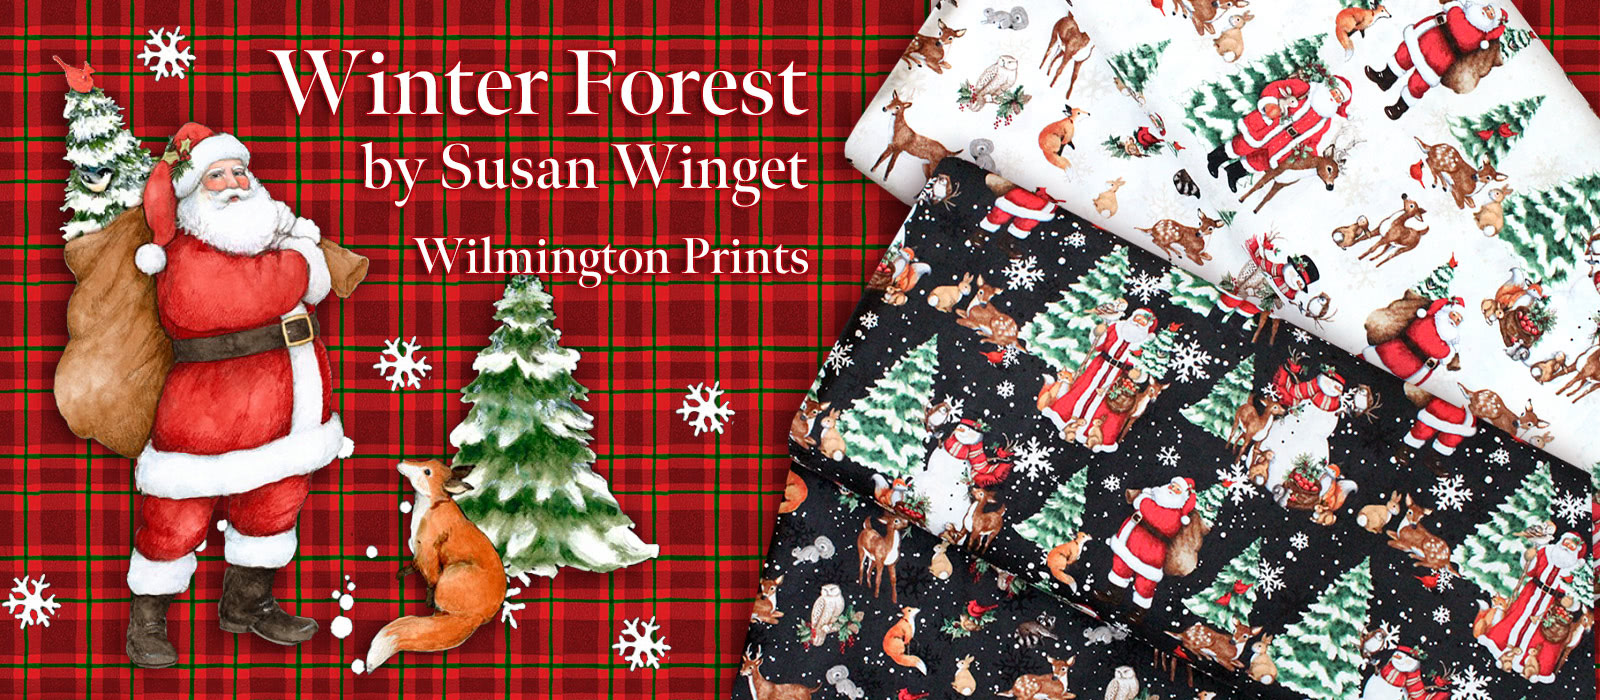 Wilmington Prints Winter Forest Collection by Susan Winget